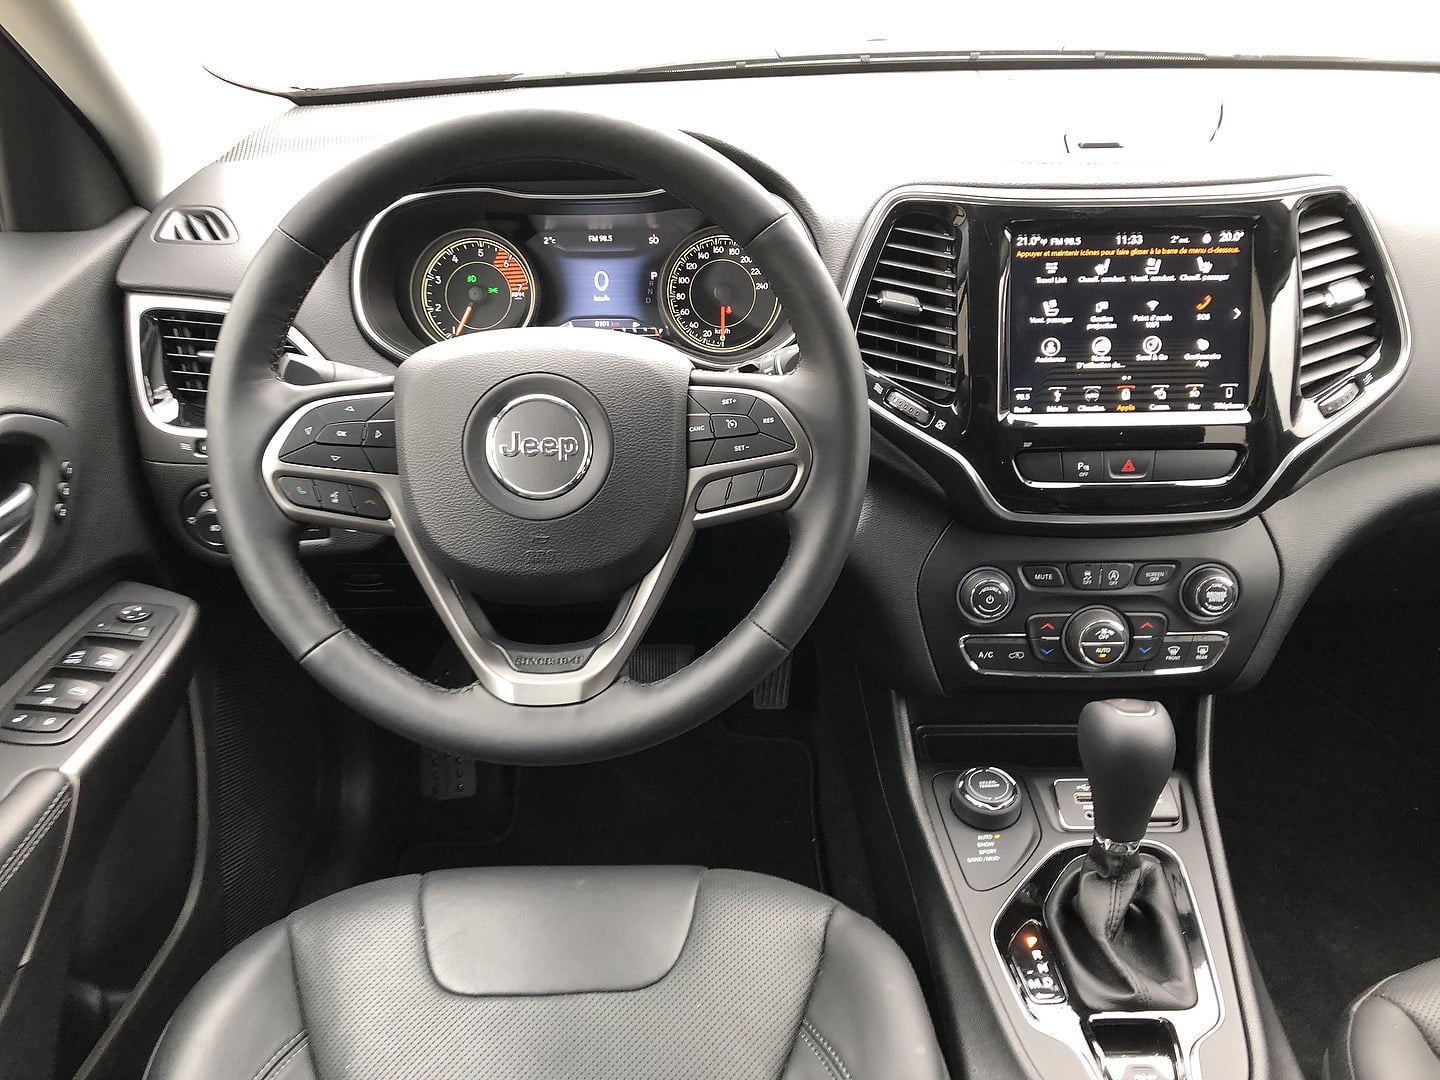 What To Use To Clean Leather Seats >> 2019 Jeep Cherokee Review: Scaling Back the Boldness ...